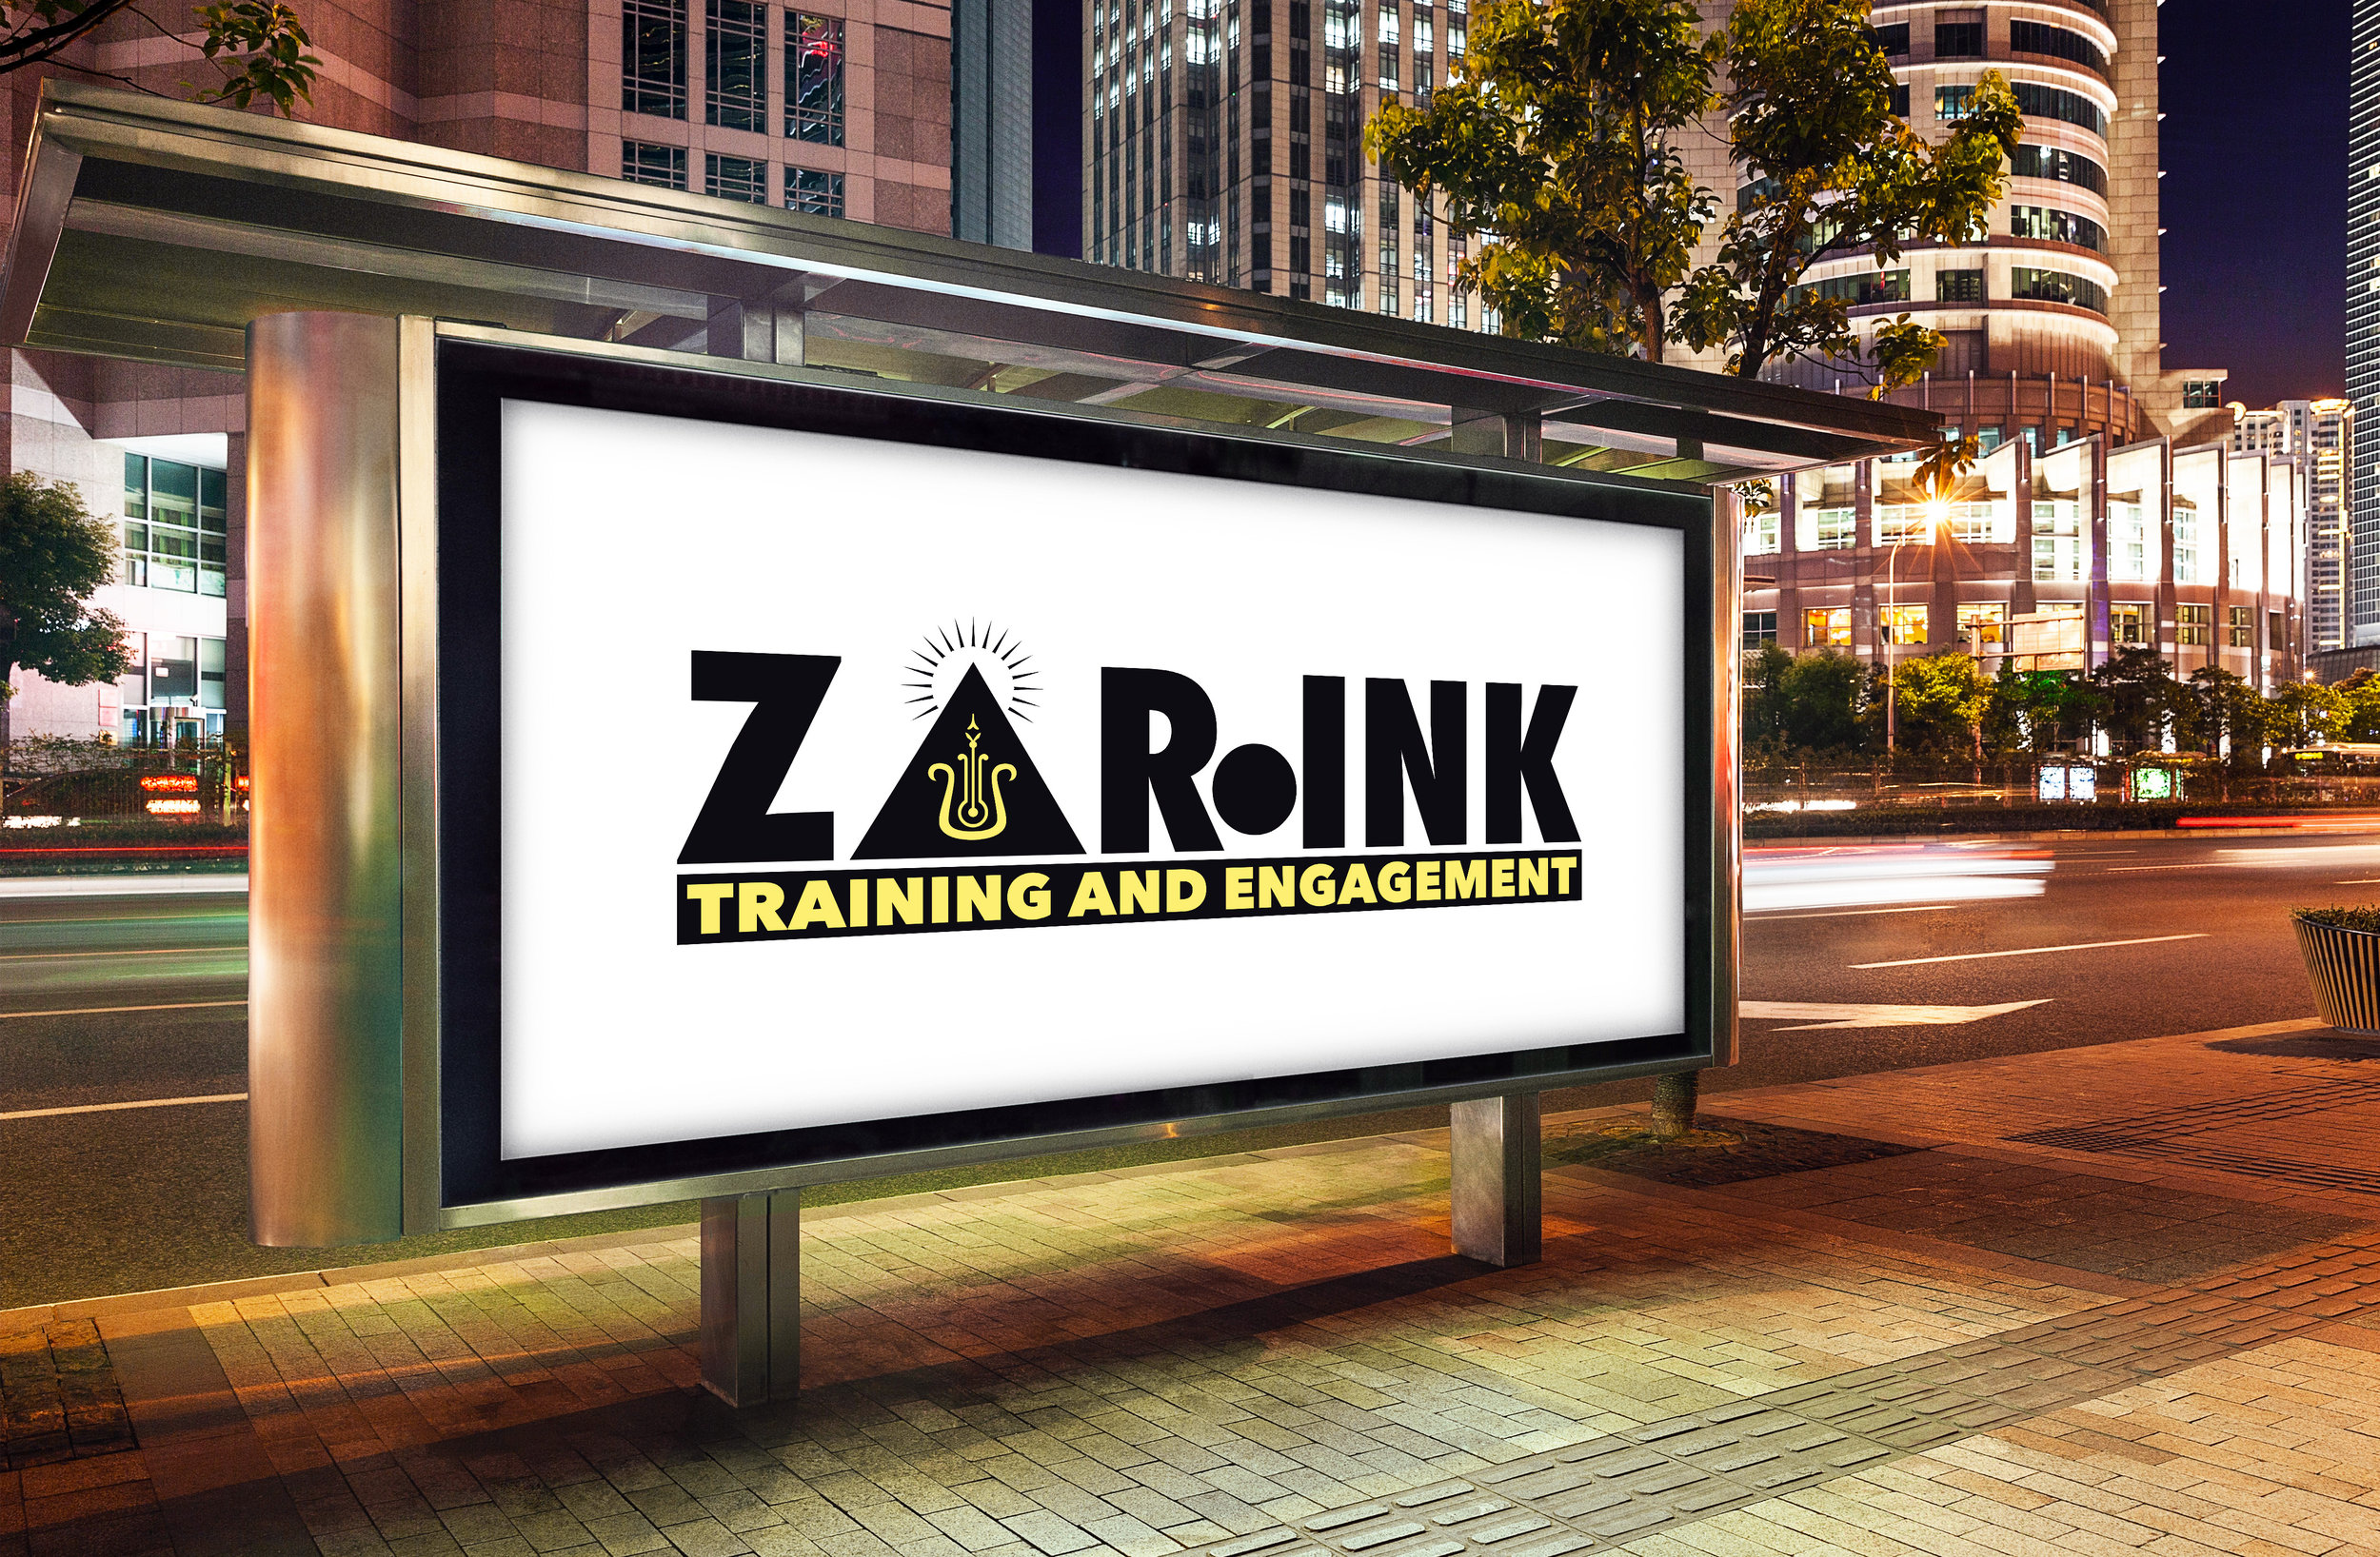 ZAR.INK Soft Skills Employee Training and Engagement